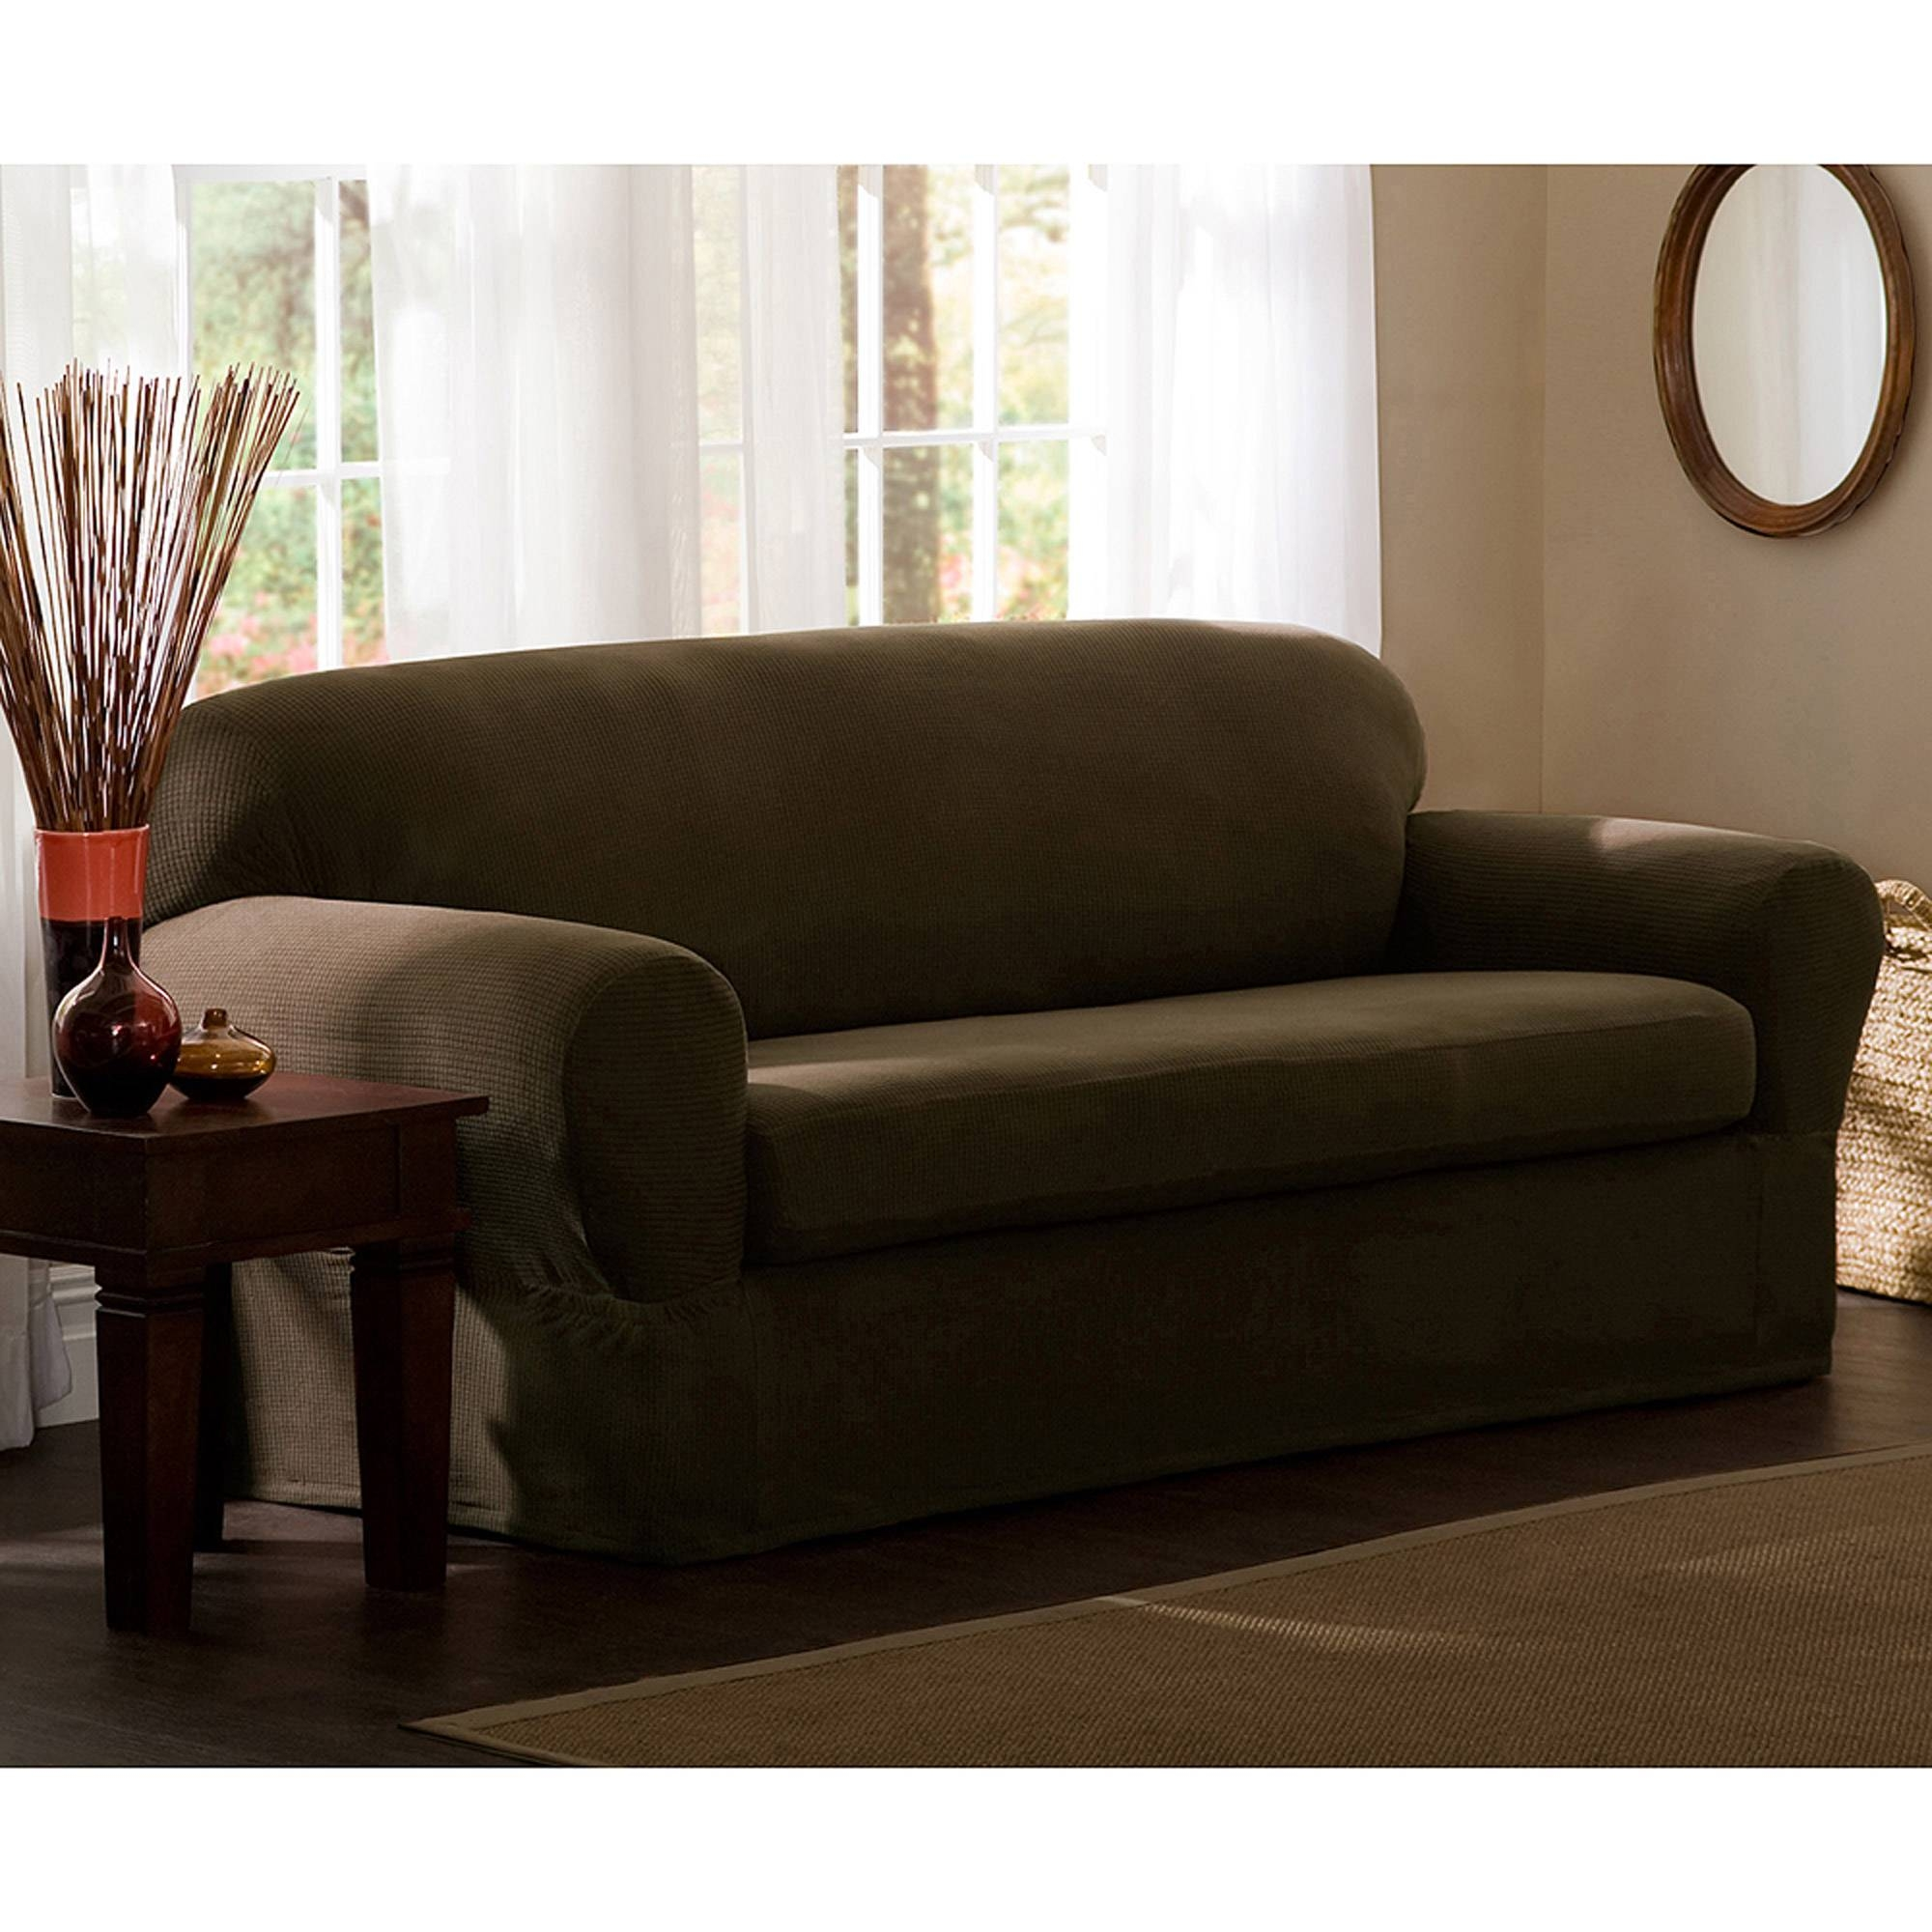 Maytex Reeves Polyester/spandex Loveseat Slipcover - Walmart with regard to Sofa and Loveseat Covers (Image 7 of 15)